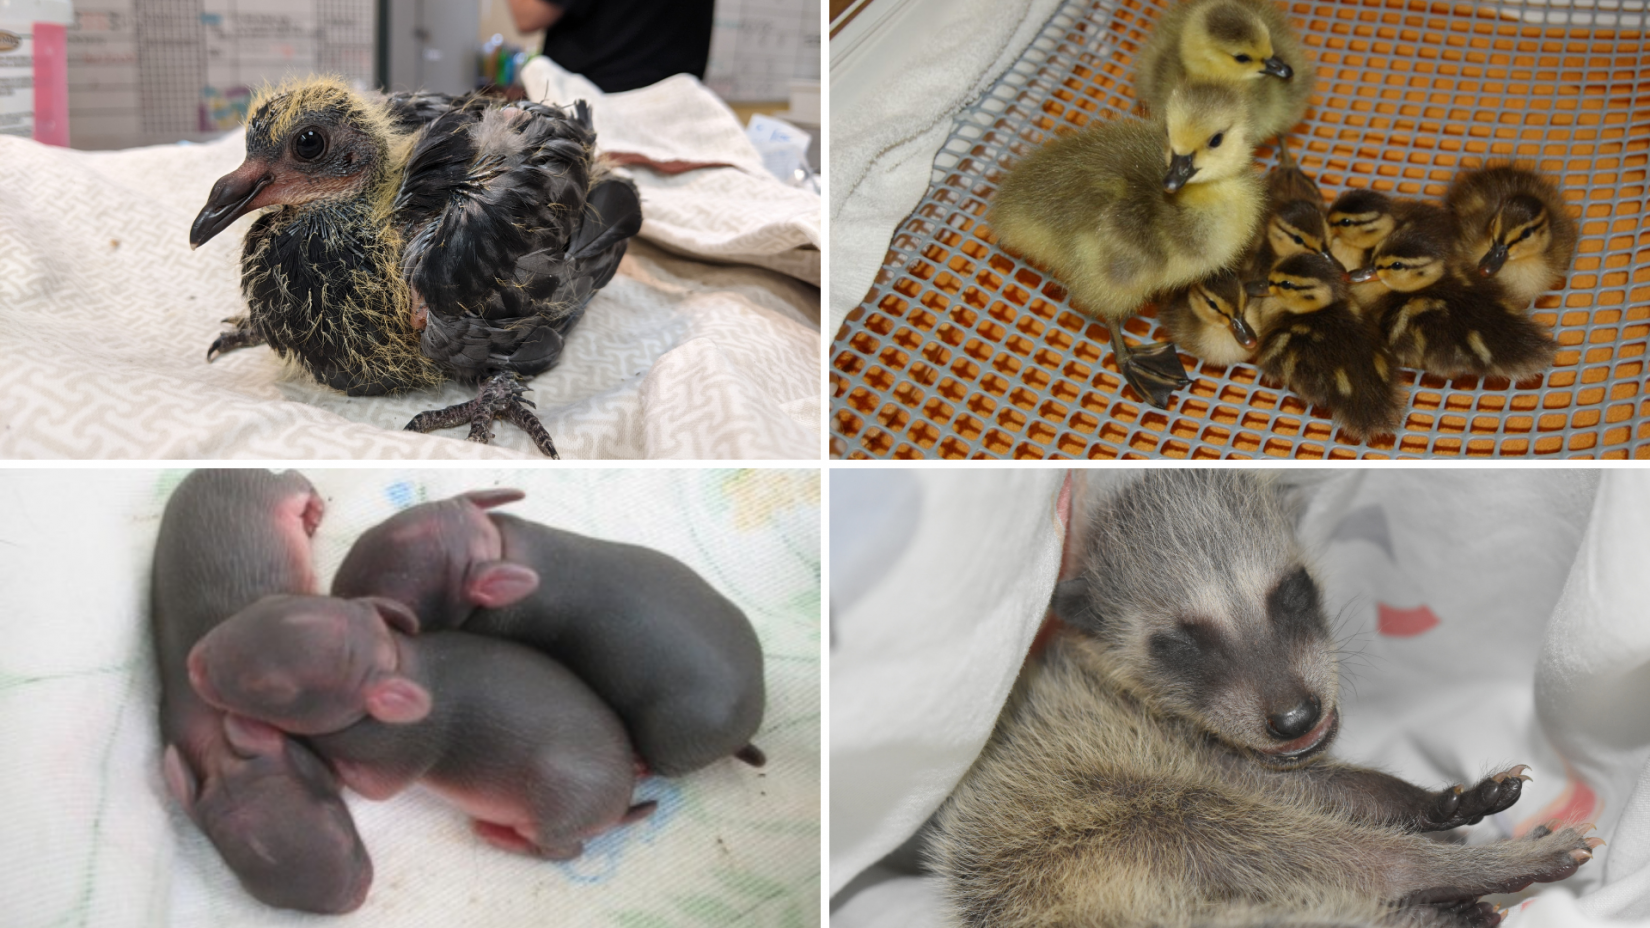 Collage of baby animals - pigeon, ducklings & goslings, newborn cottontail rabbits, baby raccoon